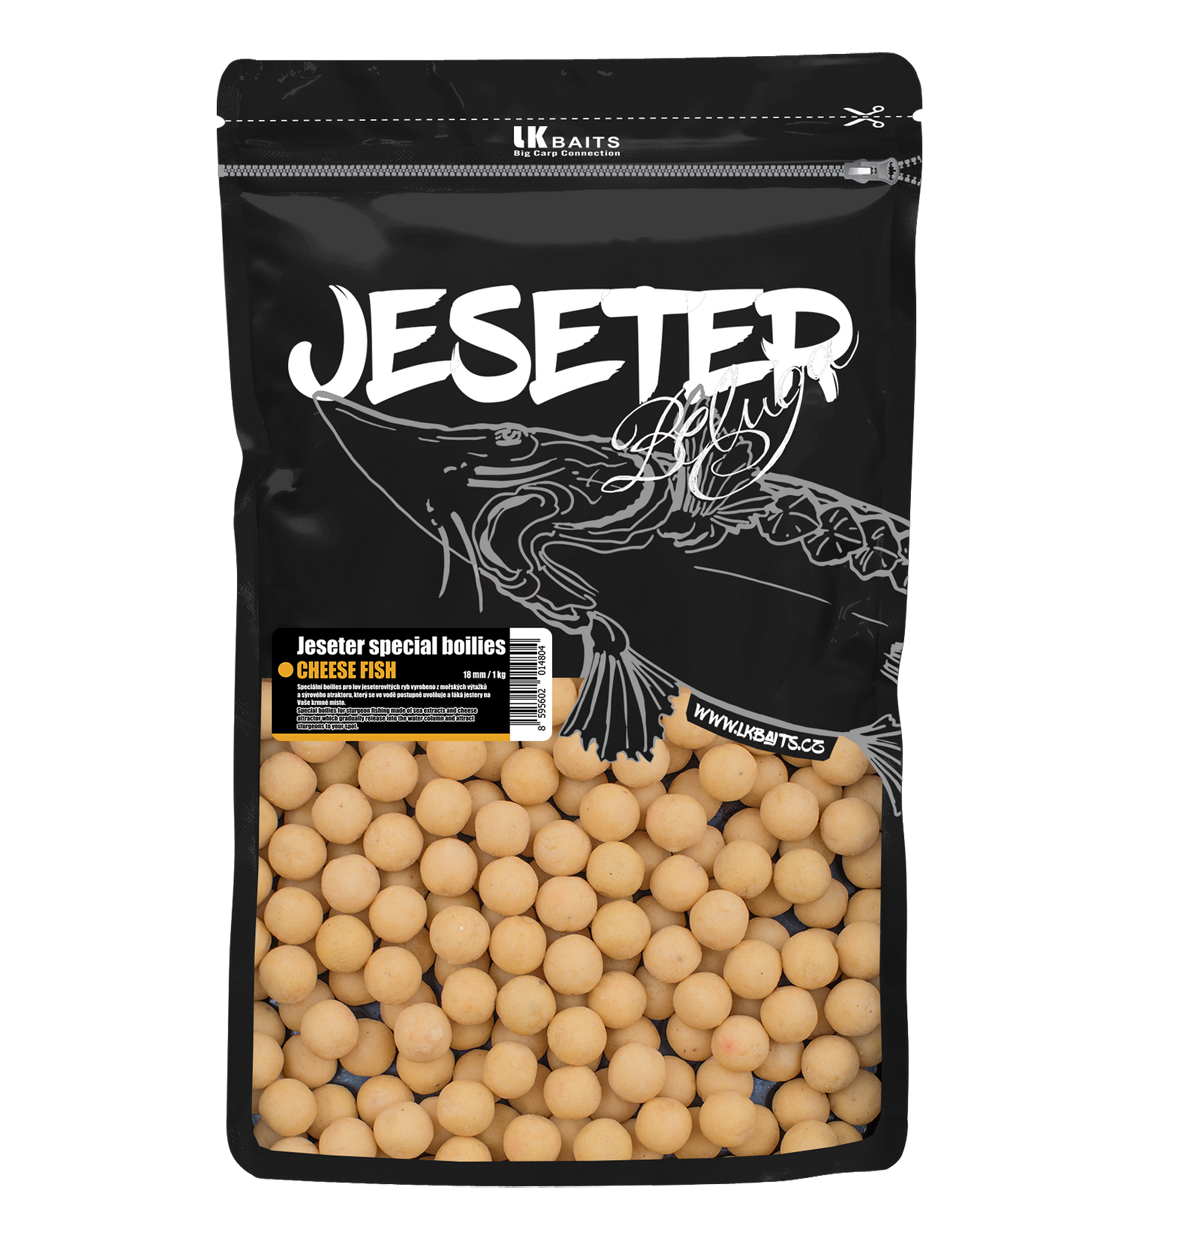 Boilie LK BAITS Jeseter Special Cheese